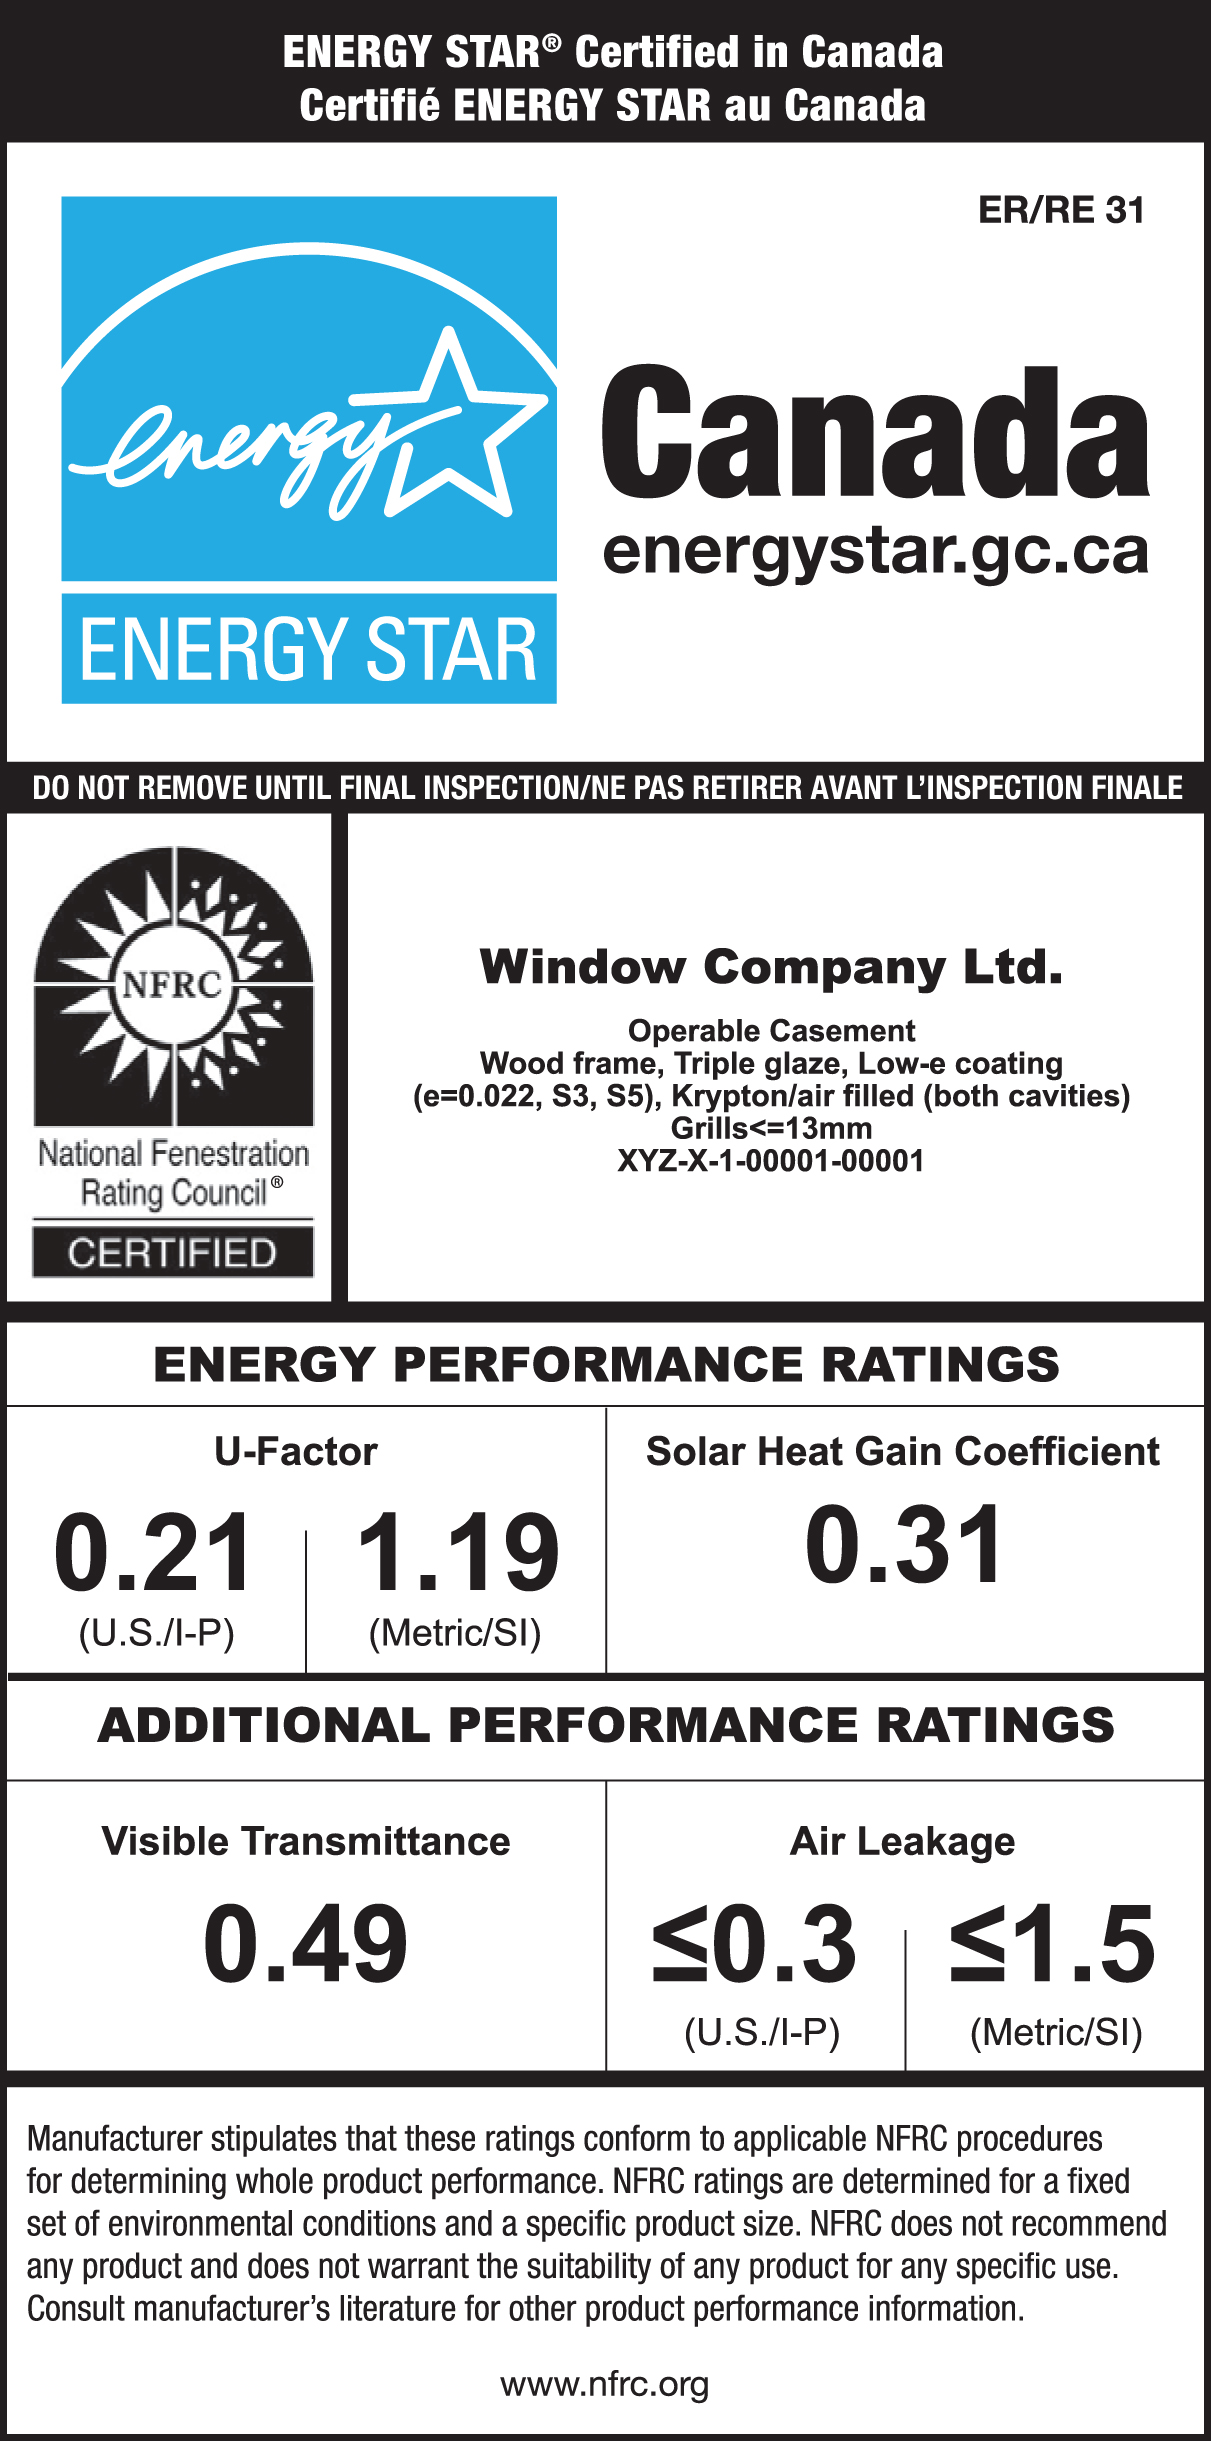 Sample ENERGY STAR label with no map indicating that the product is certified for Zones 1, 2 and 3 with the energy performance label showing the specific performance ratings, brand name, model description and the certification mark of NFRC.